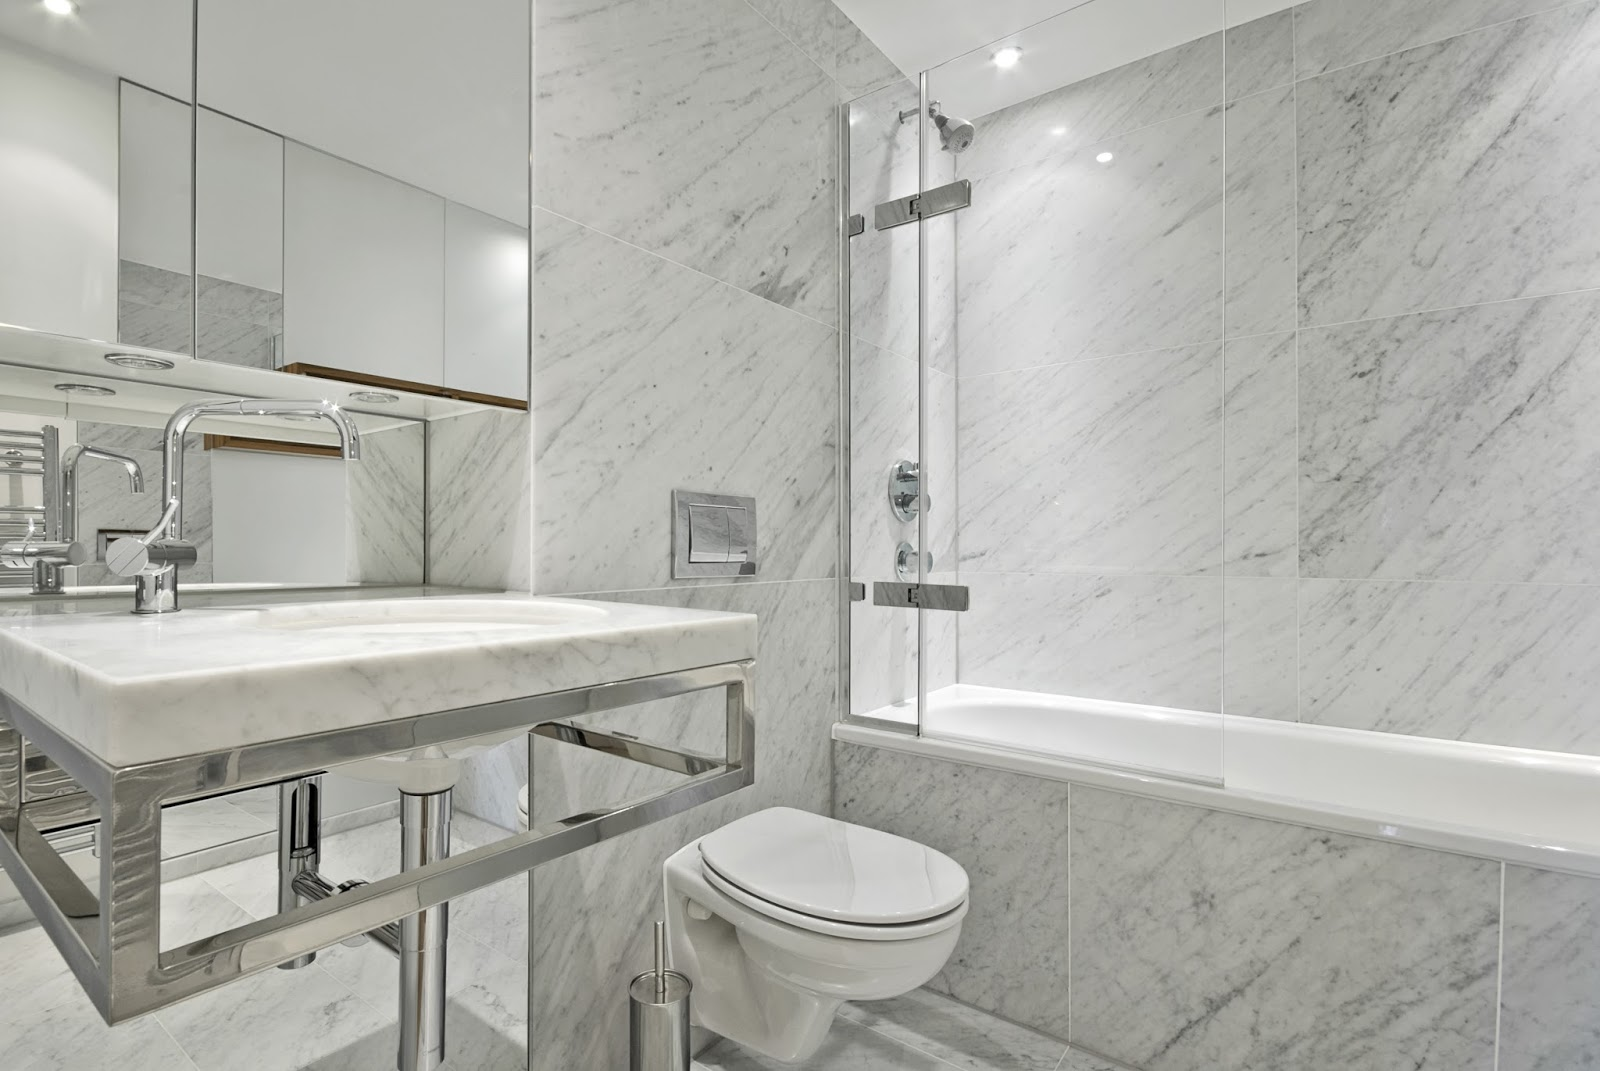 The official portland direct tile and marble blog tile store portland oregon portland direct tile marble dailygadgetfo Image collections